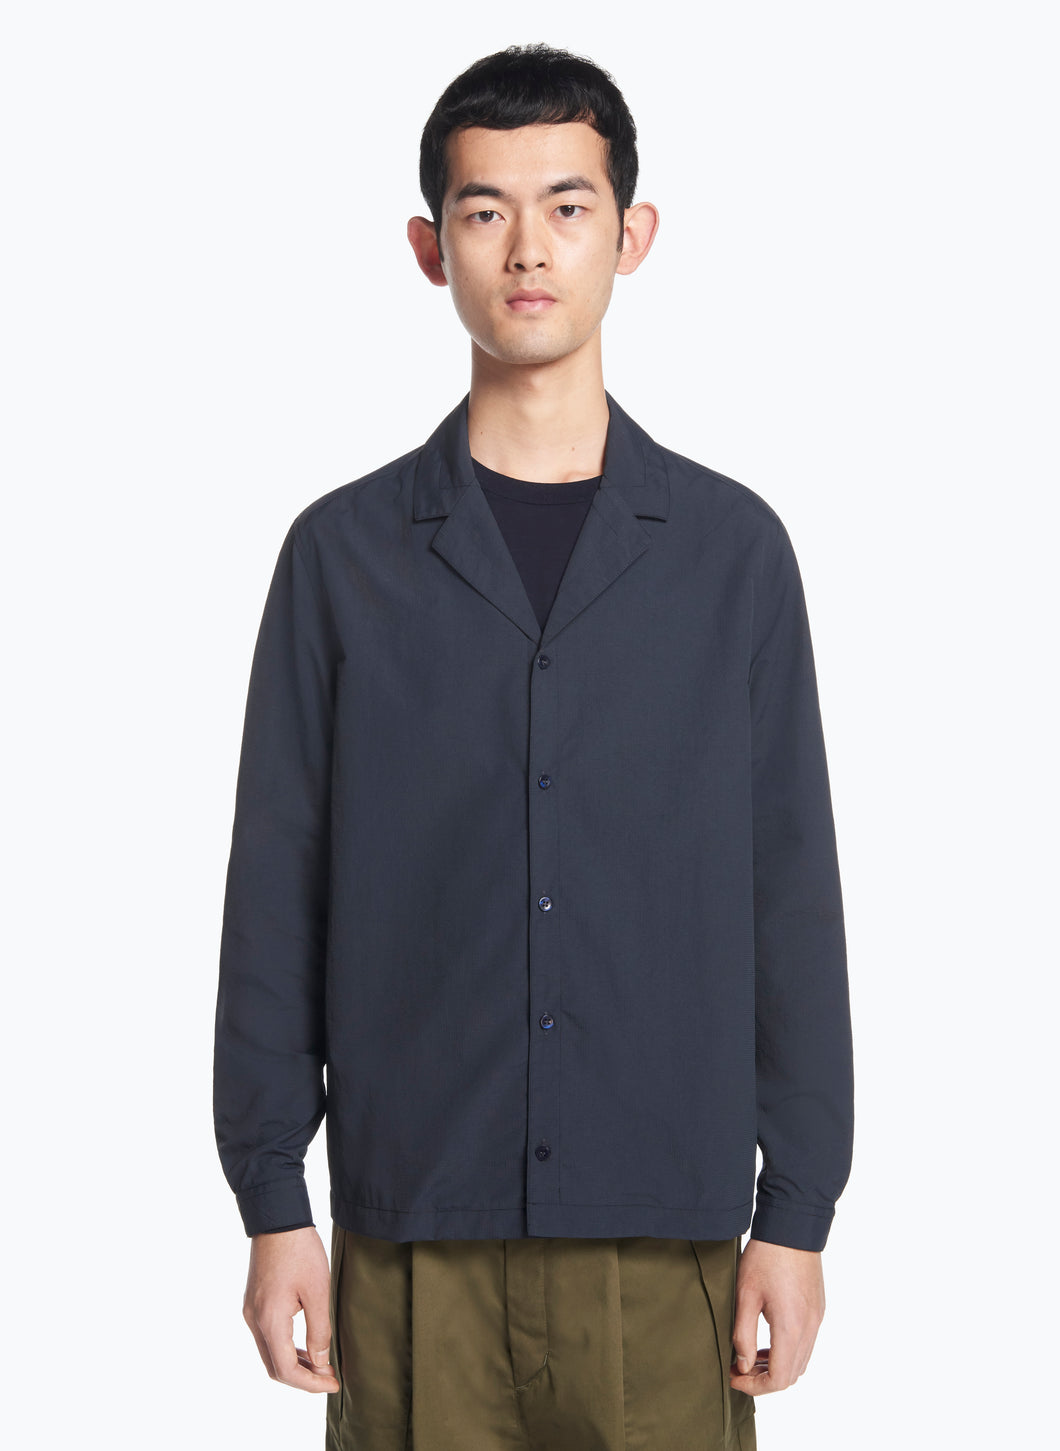 Tailor Collar Overshirt in Navy Blue Ripstop